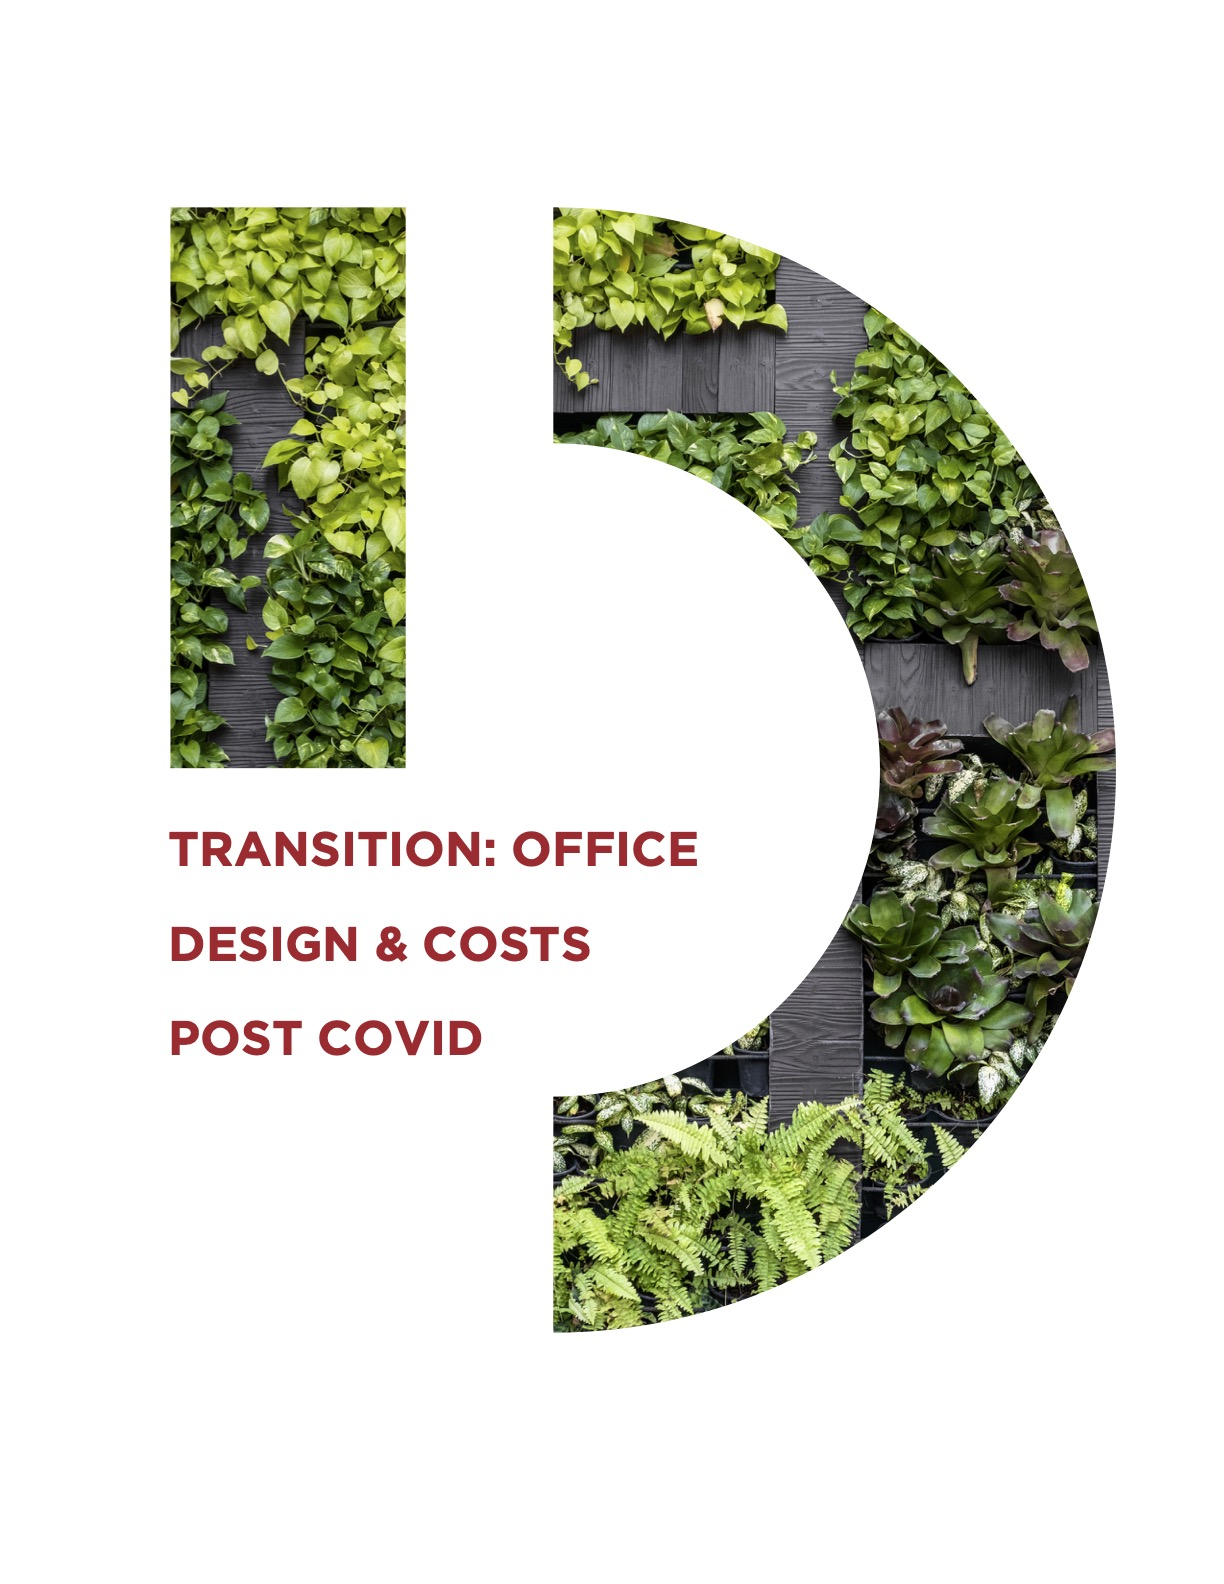 Transition: Office Design and Costs Post Covid